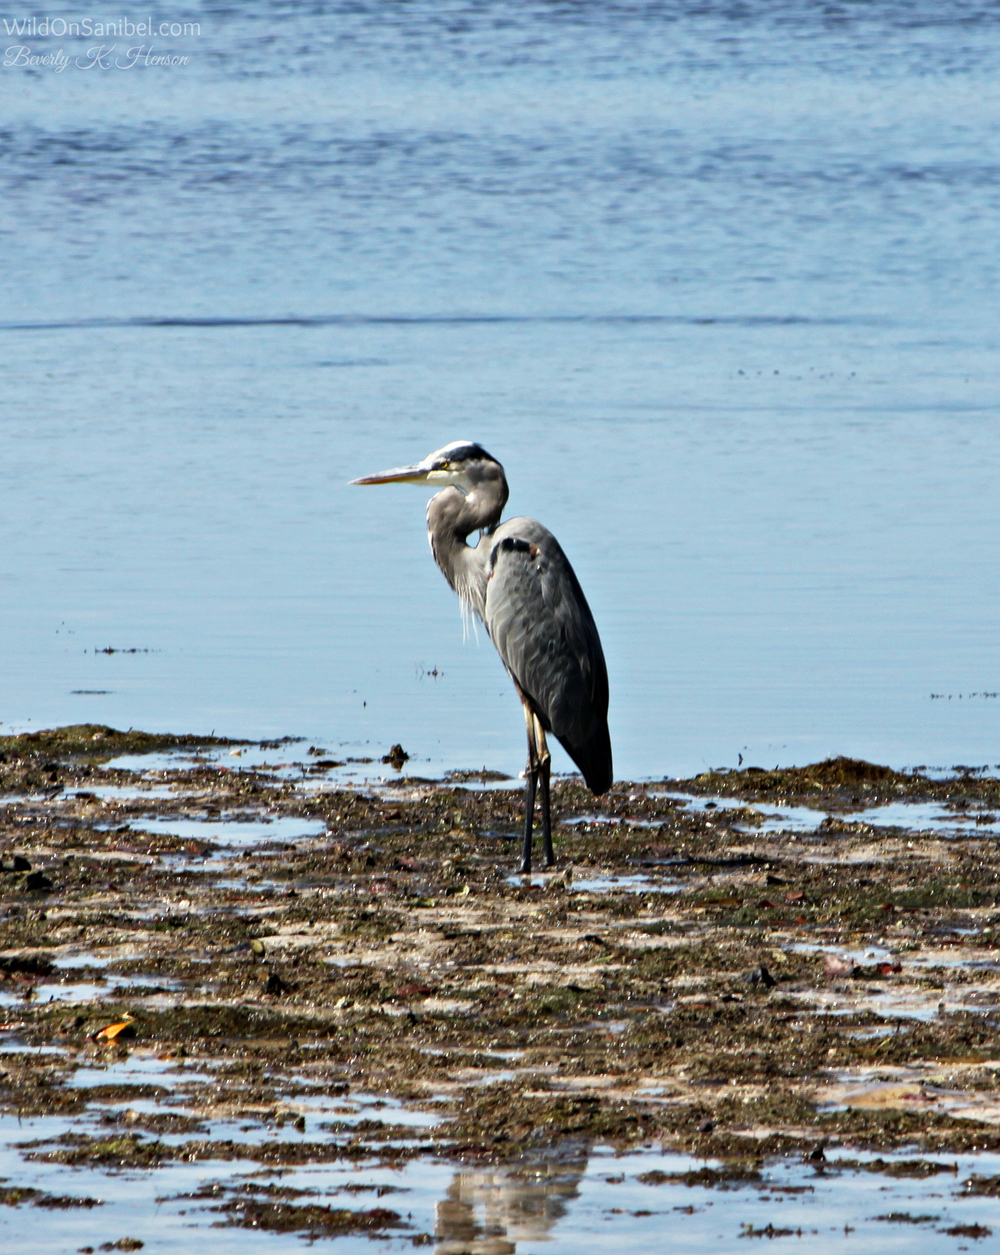 The Great Blue Heron is such a regal bird.